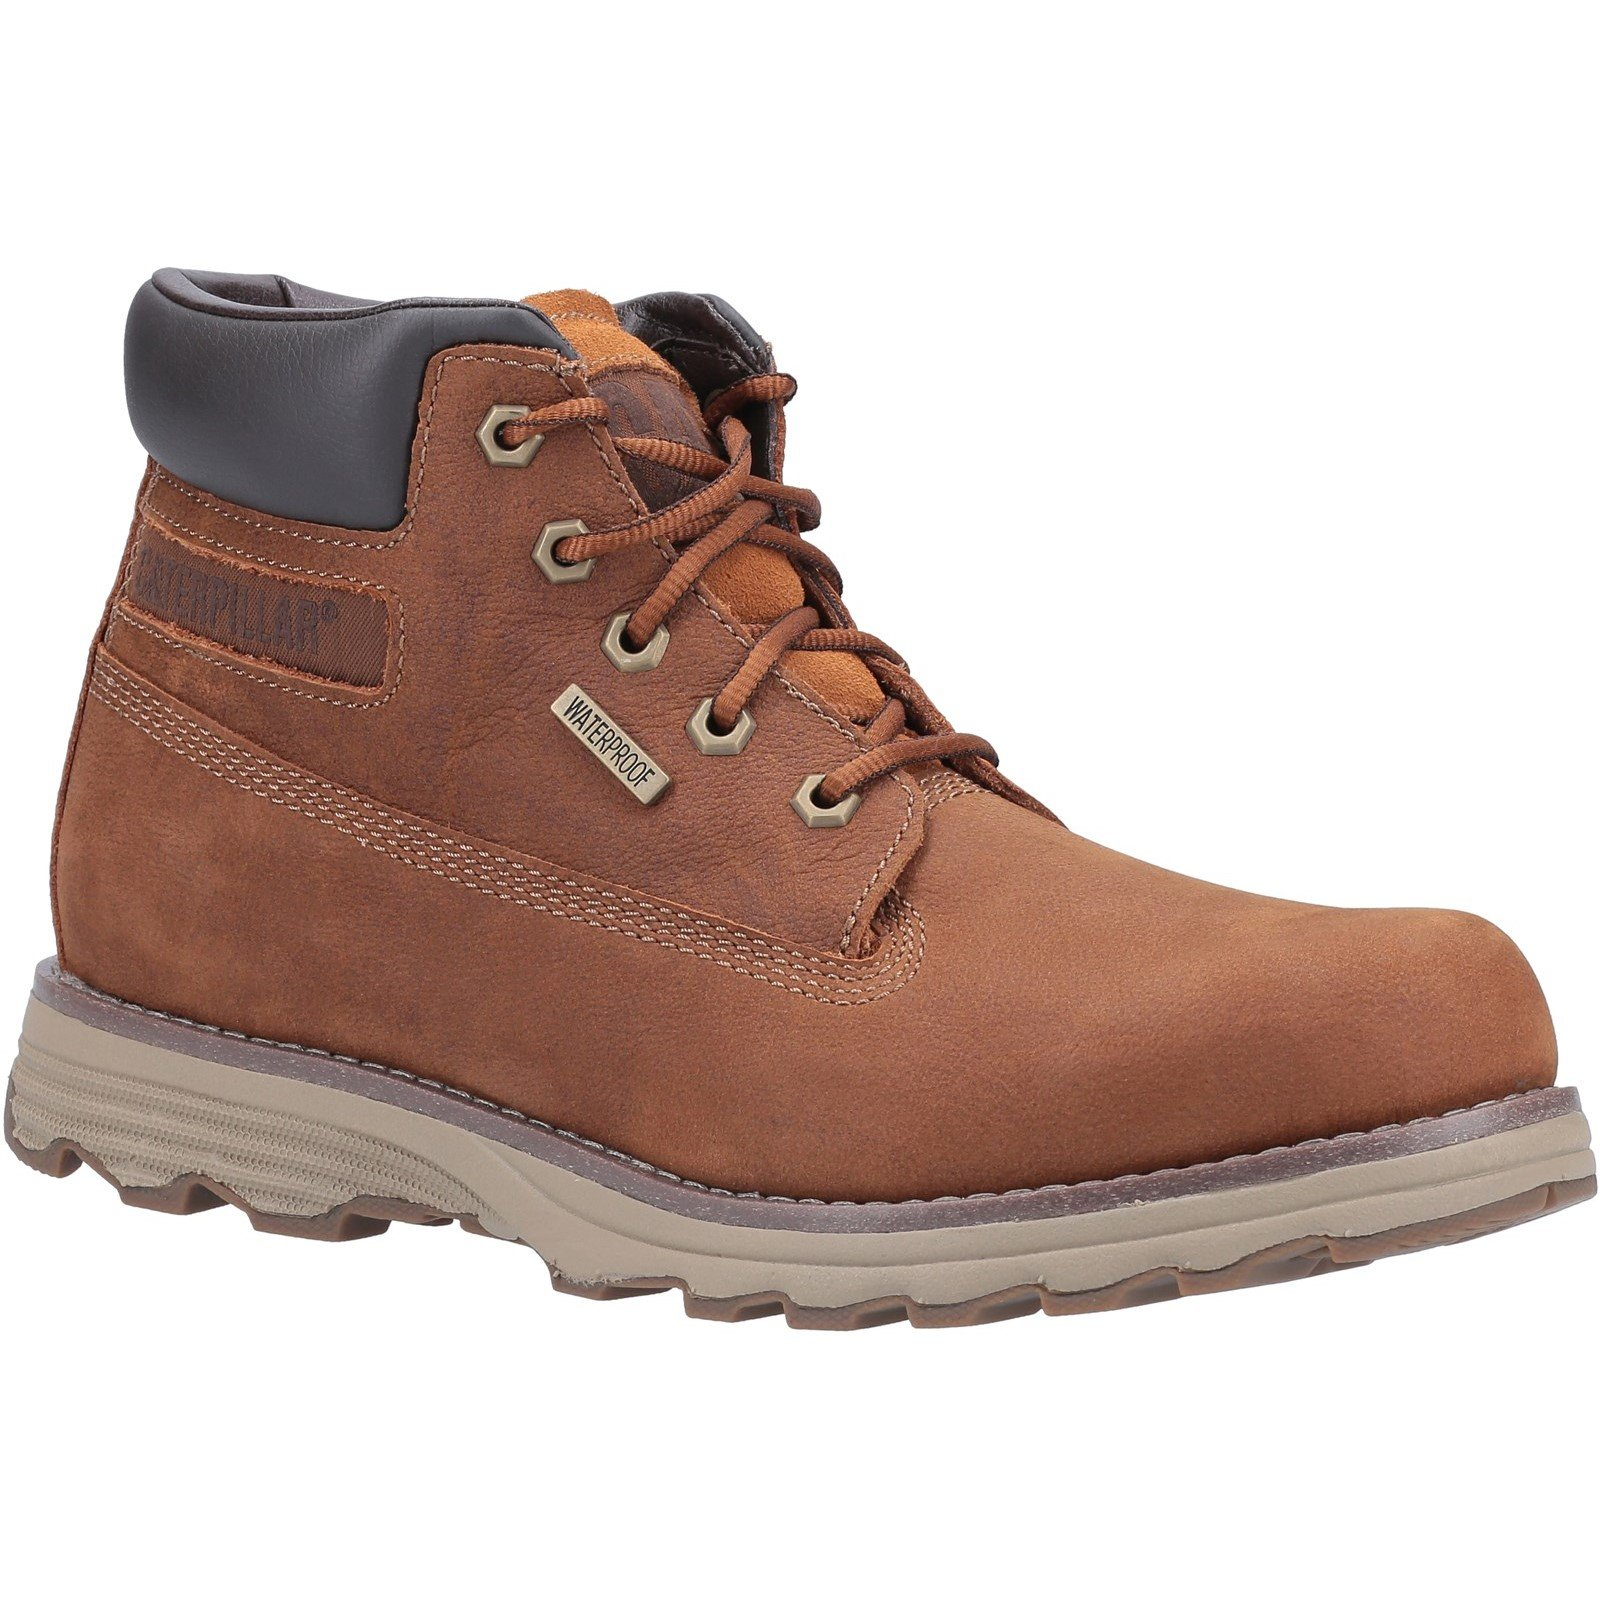 CAT Lifestyle Men's Founder WP TX Lace Up Boot 31487-53851 - Danish Brown 12